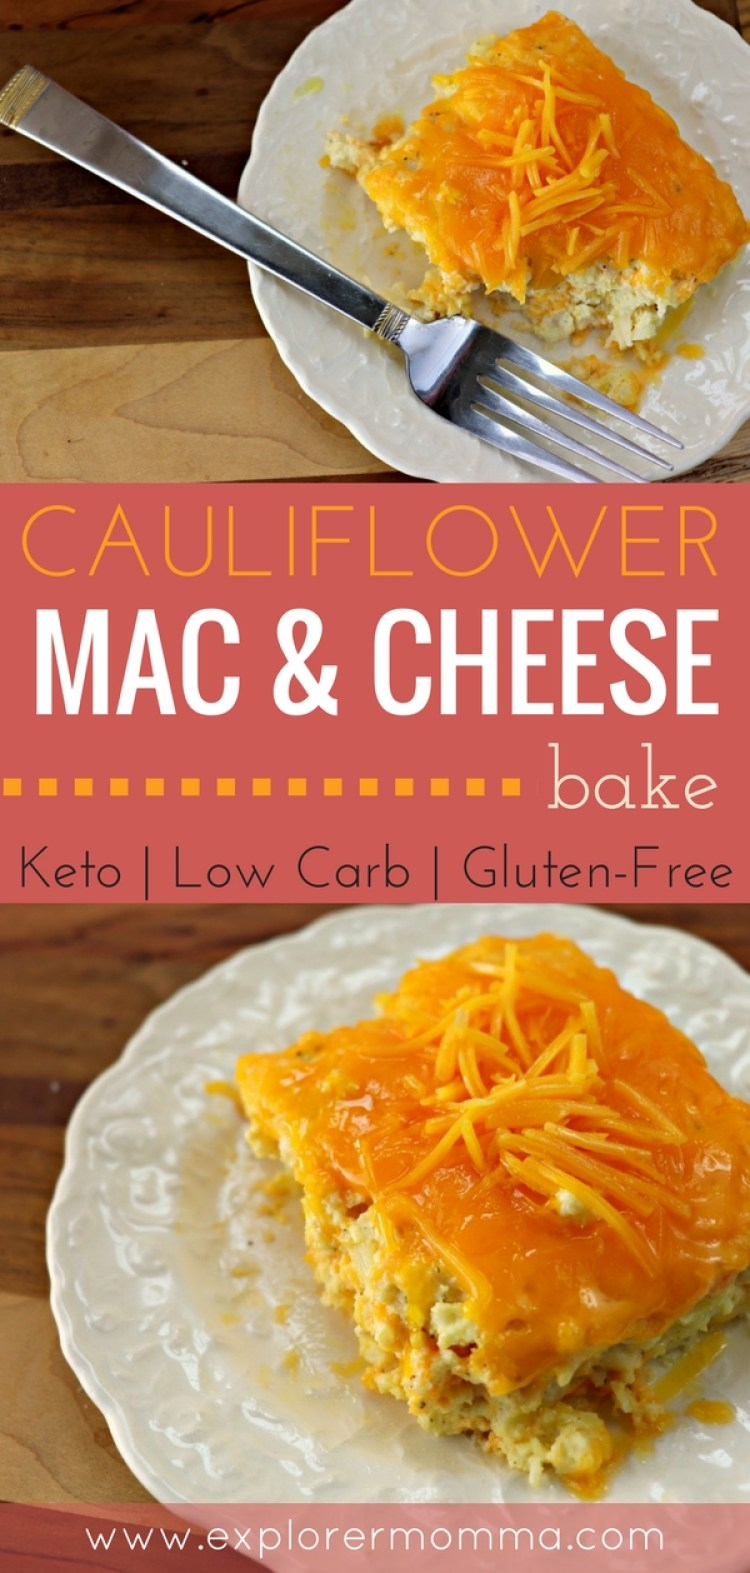 Cauliflower mac & cheese bake